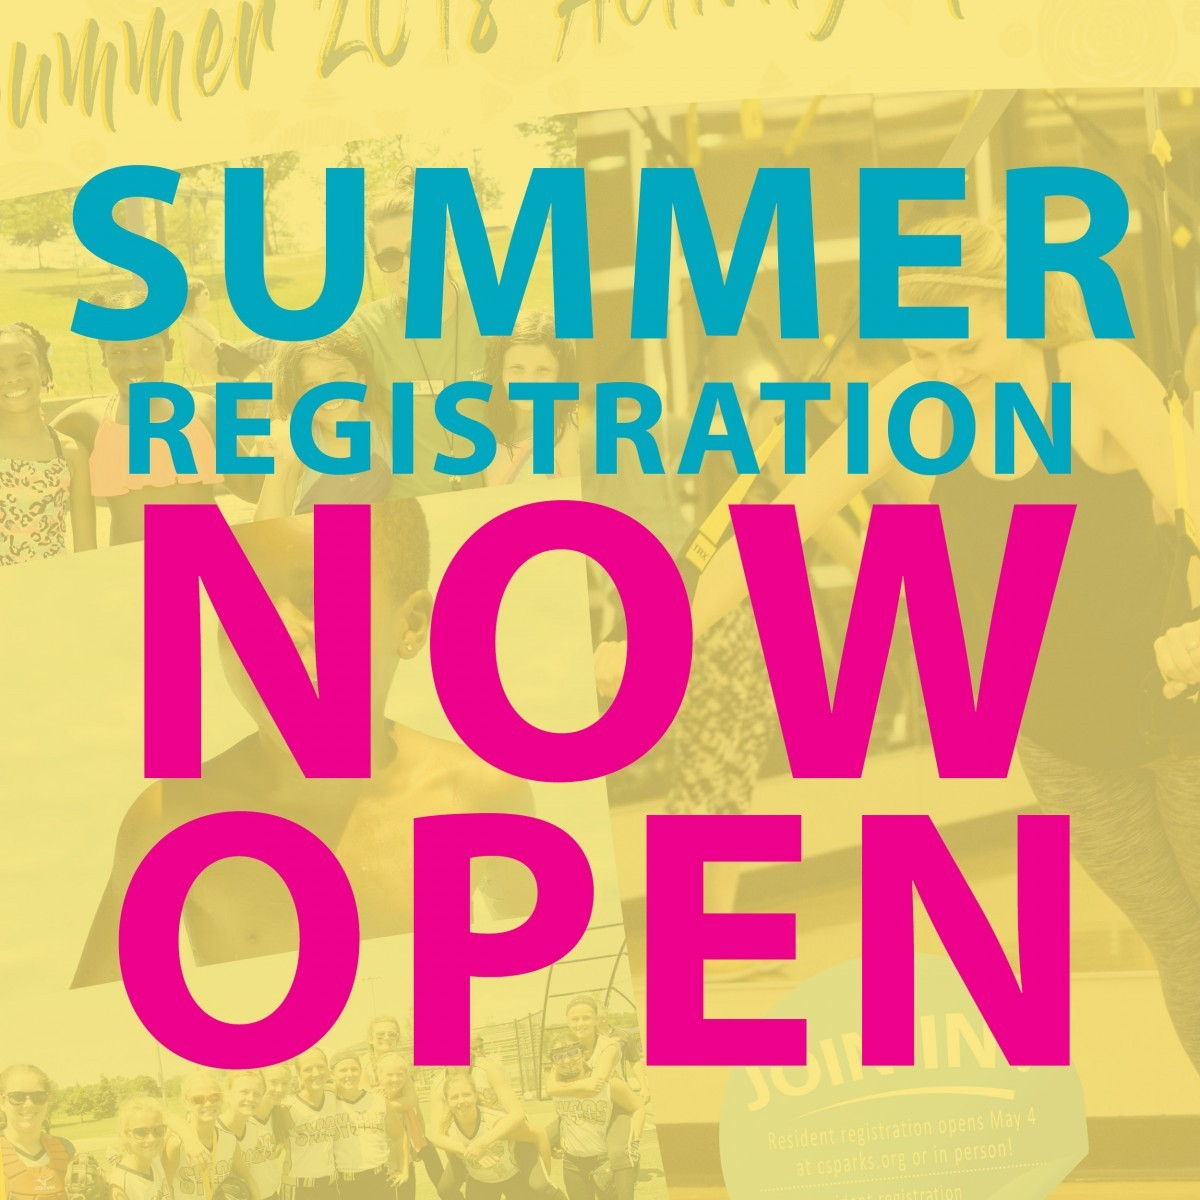 SummerRegistration-socialmedia-2018